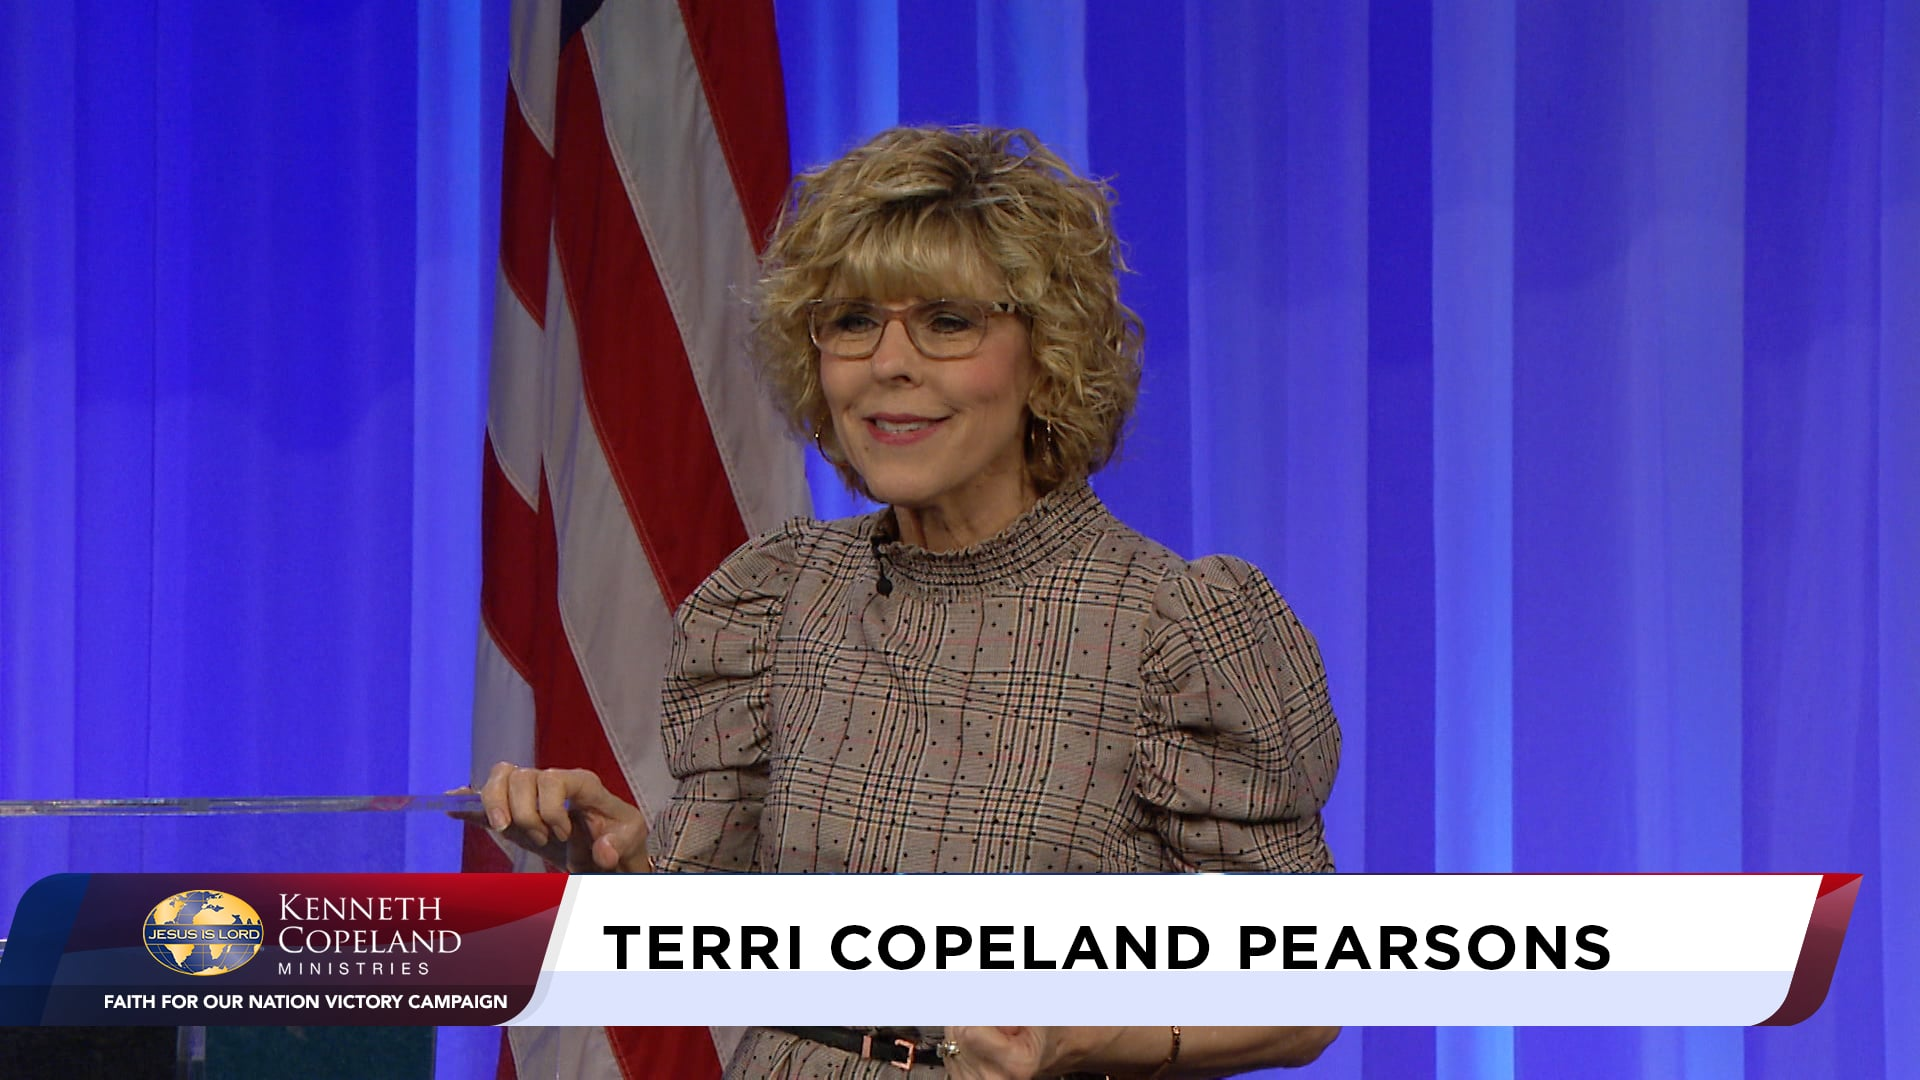 At the 2020 Faith for Our Nation VICTORY Campaign, Terri Copeland Pearsons and her guest, Ps. Gene Bailey, discuss the need for a revelation of God in the hearts of people everywhere resulting in revival. Prayers are offered for a global increase of intimacy with God that changes people, things and nations.